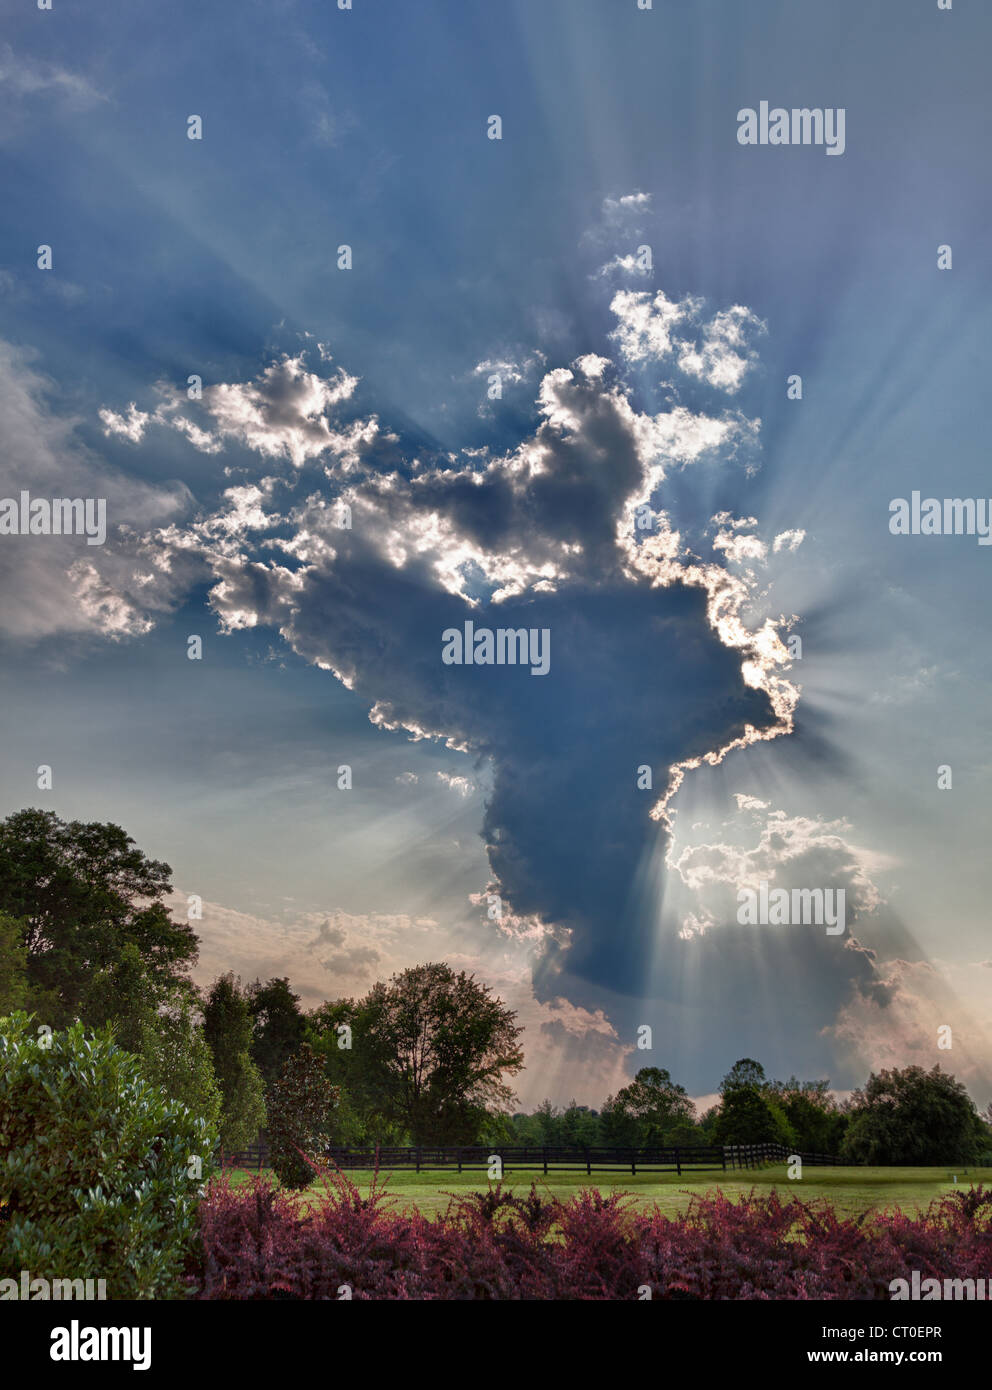 Storm clouds over meadows with sunrays, dramatic sky - Stock Image